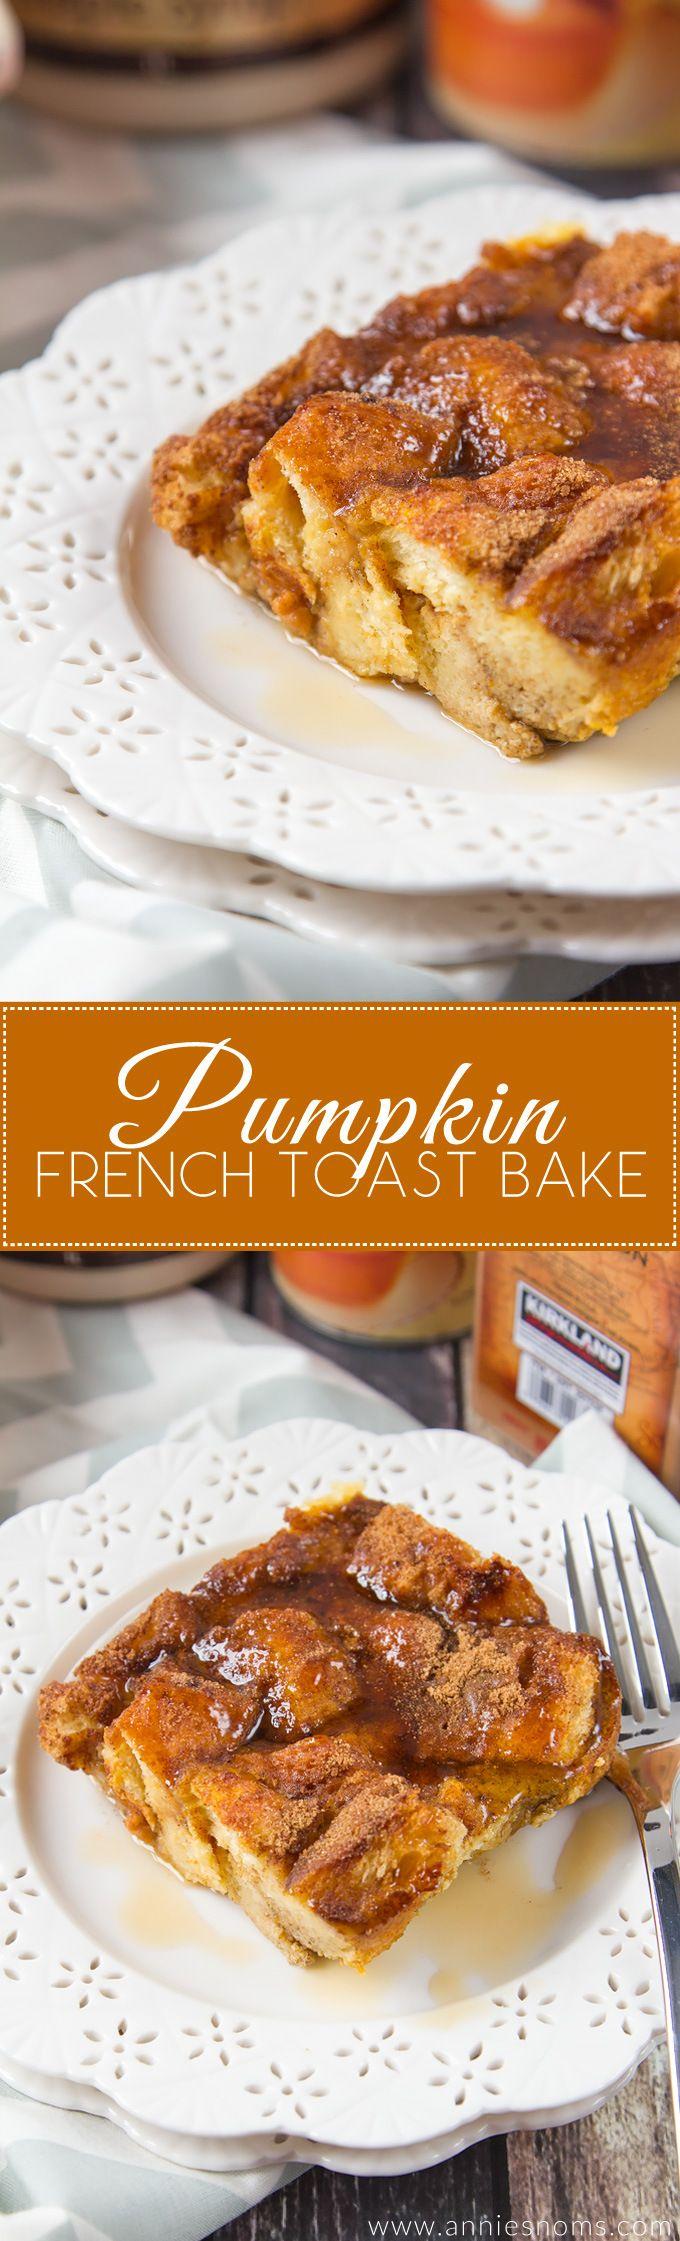 Cubes of bread soaked in a spiced, pumpkin filled custard before being baked until crisp on top. This Pumpkin French Toast Bake is without doubt, the best decadent breakfast recipe!